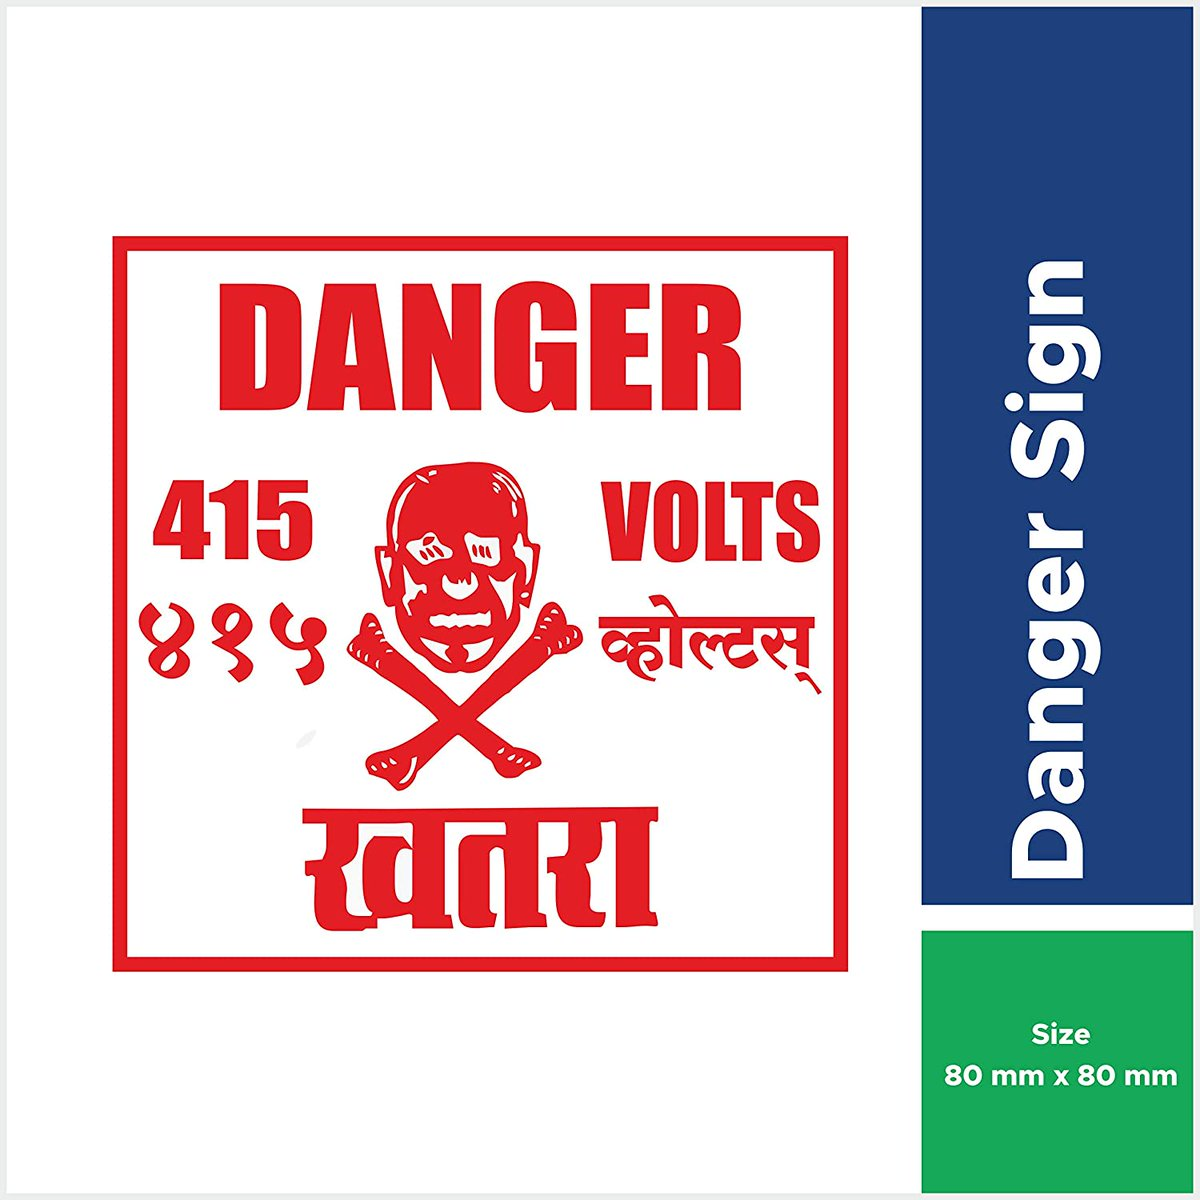 Rangvishwa Danger Sticker - High Voltage 415 Volts Electric Signage (Pack of 10) 8 cm X 8 cm  Buy now :  FlipKart:  https://www.flipkart.com/rangvishwa-danger-415-volts-emergency-sign/p/itm43daa504db64f… .  #safety #safetyfirst #security #construction #safe #protection #work #training #technology #health #safetytips #engineering #k #family